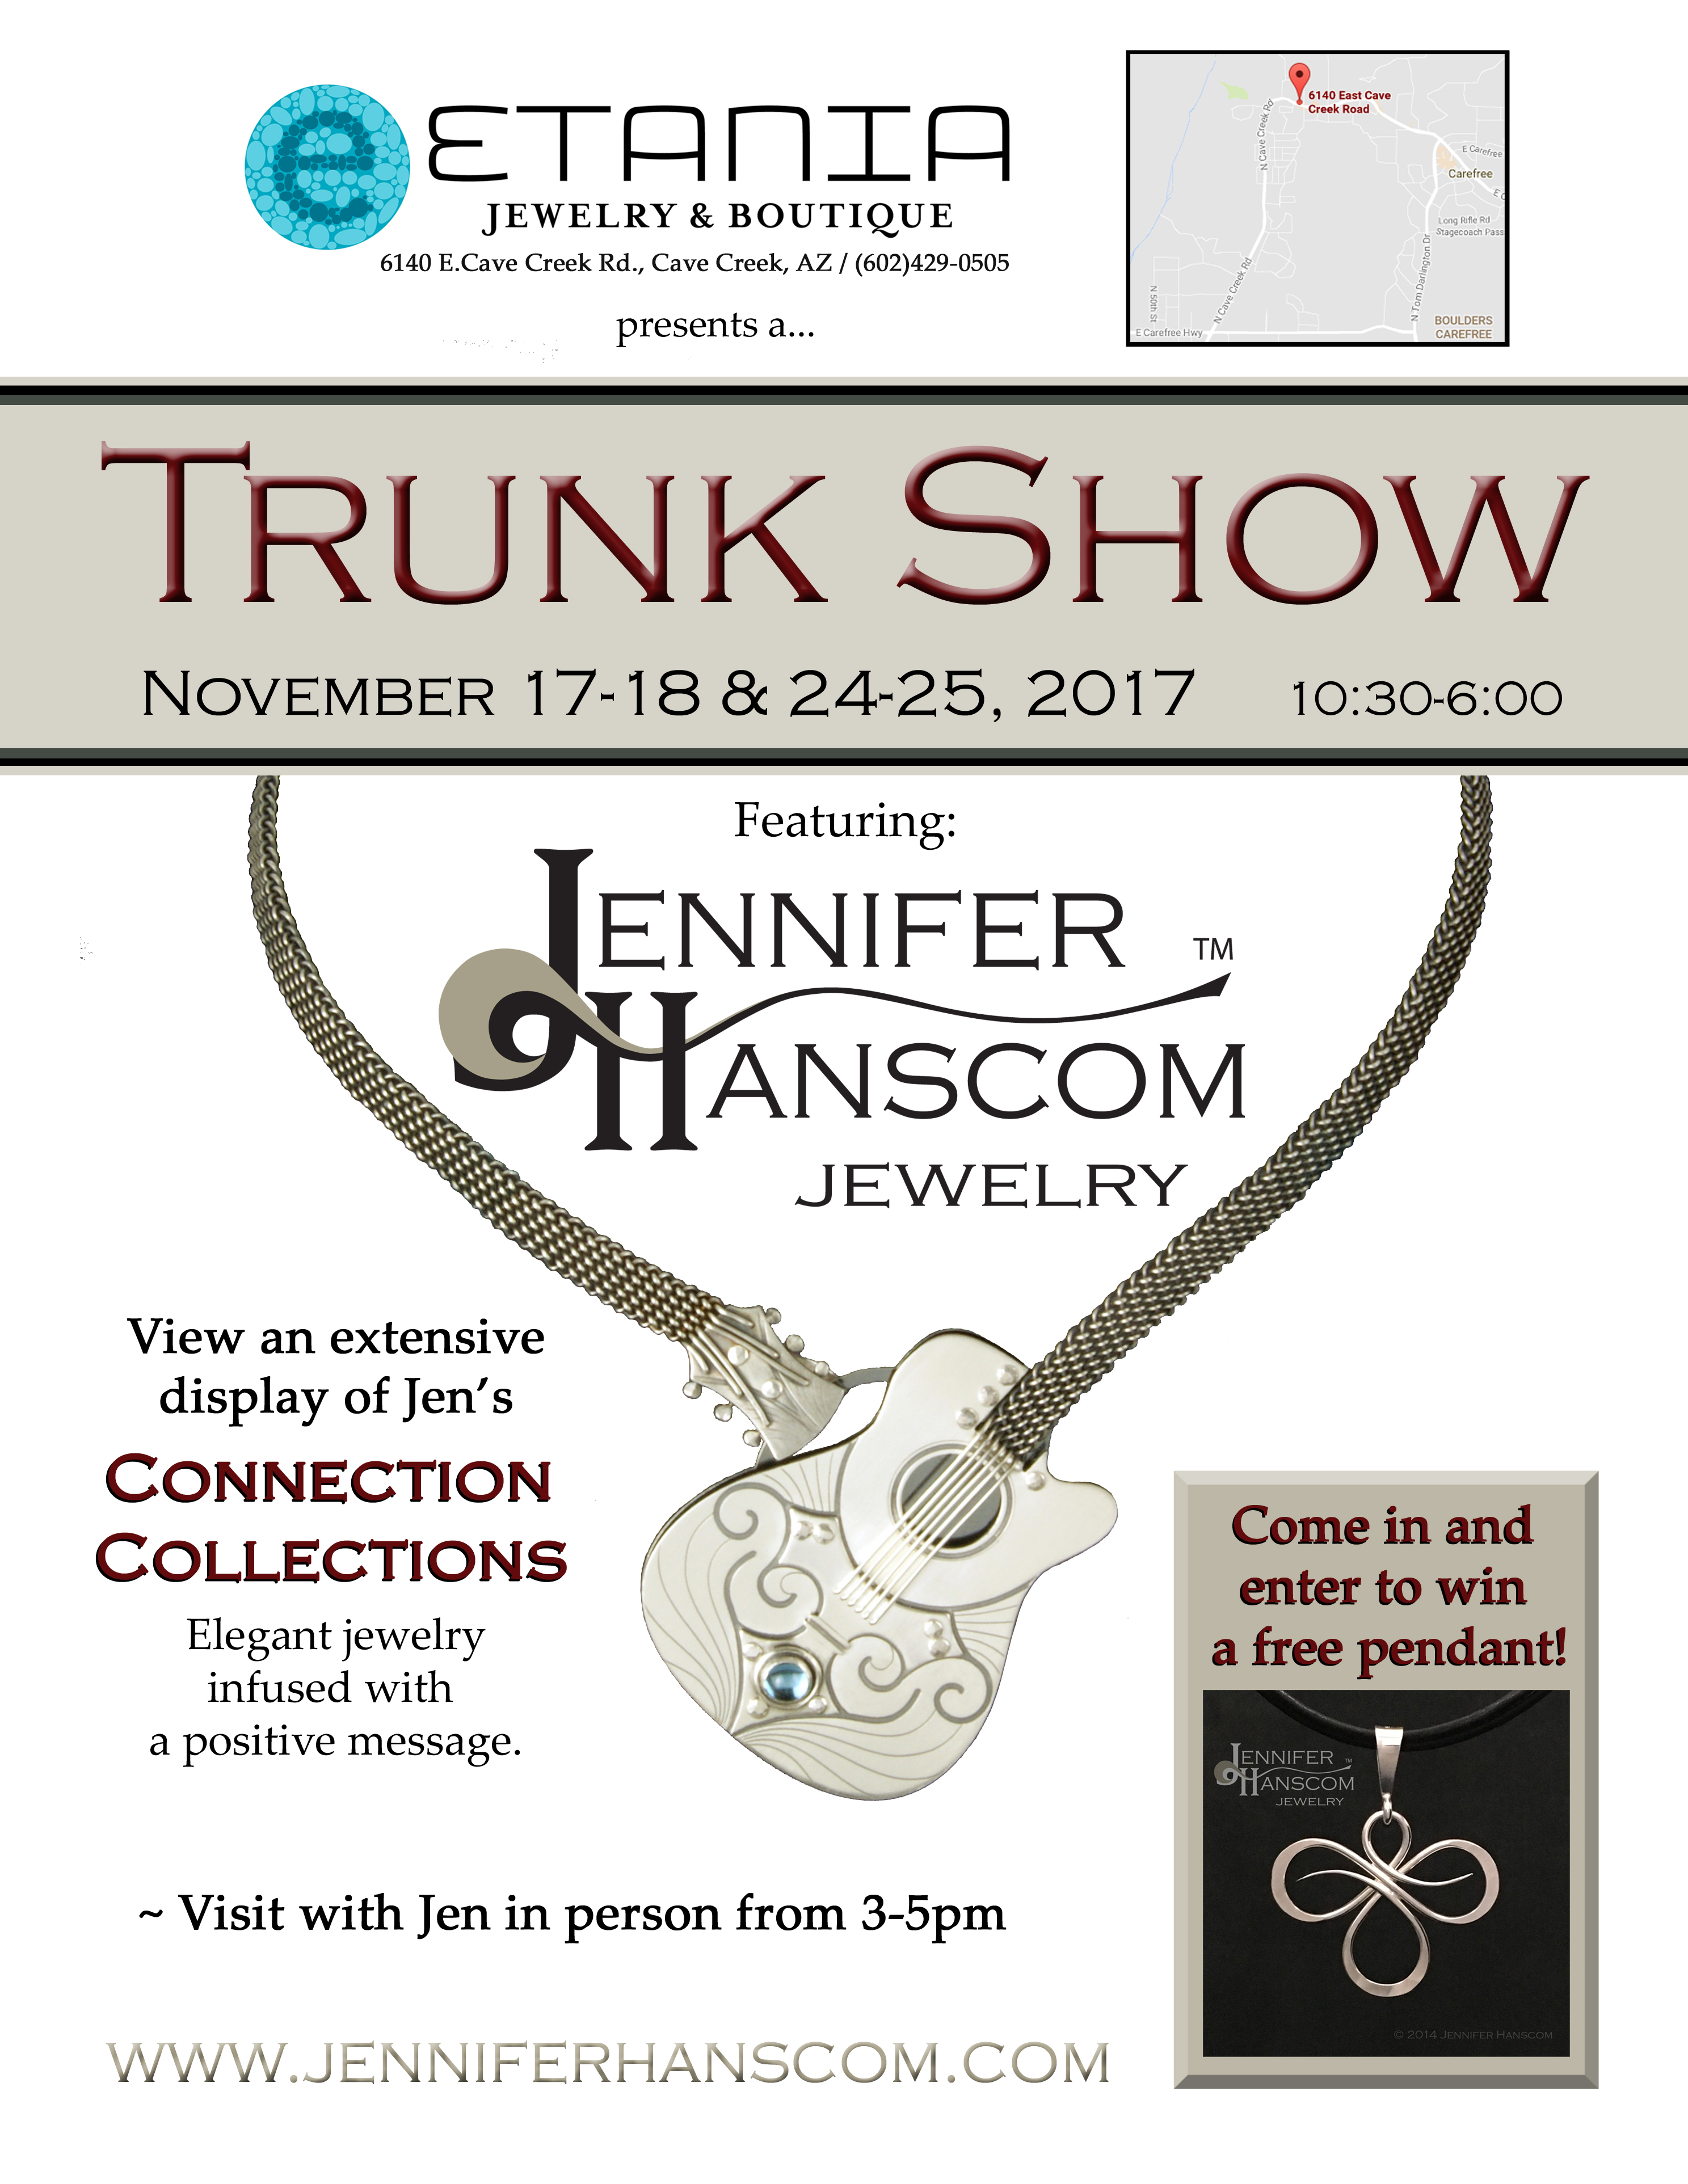 Flyer for Trunk Show at Etania Jewelry & Boutique